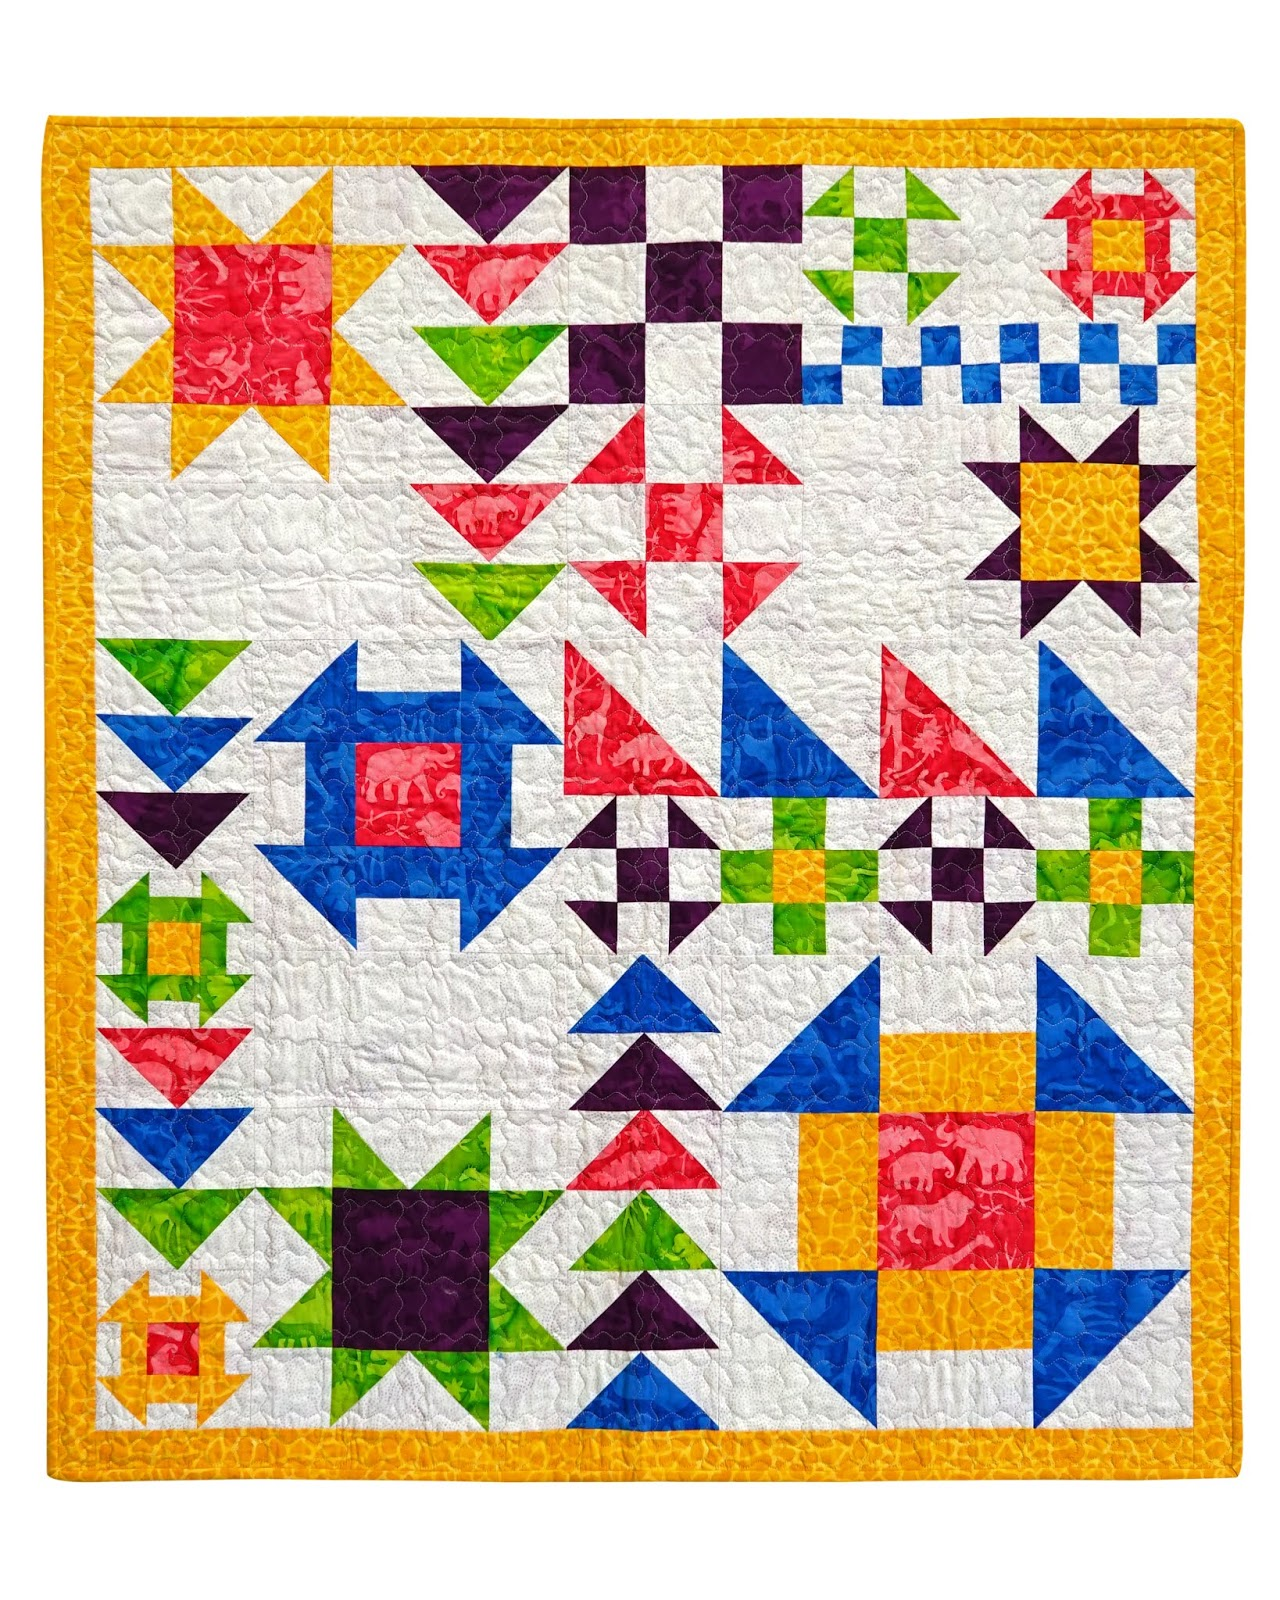 The Quilt Pictured Is Made With Fabric Provided By Island